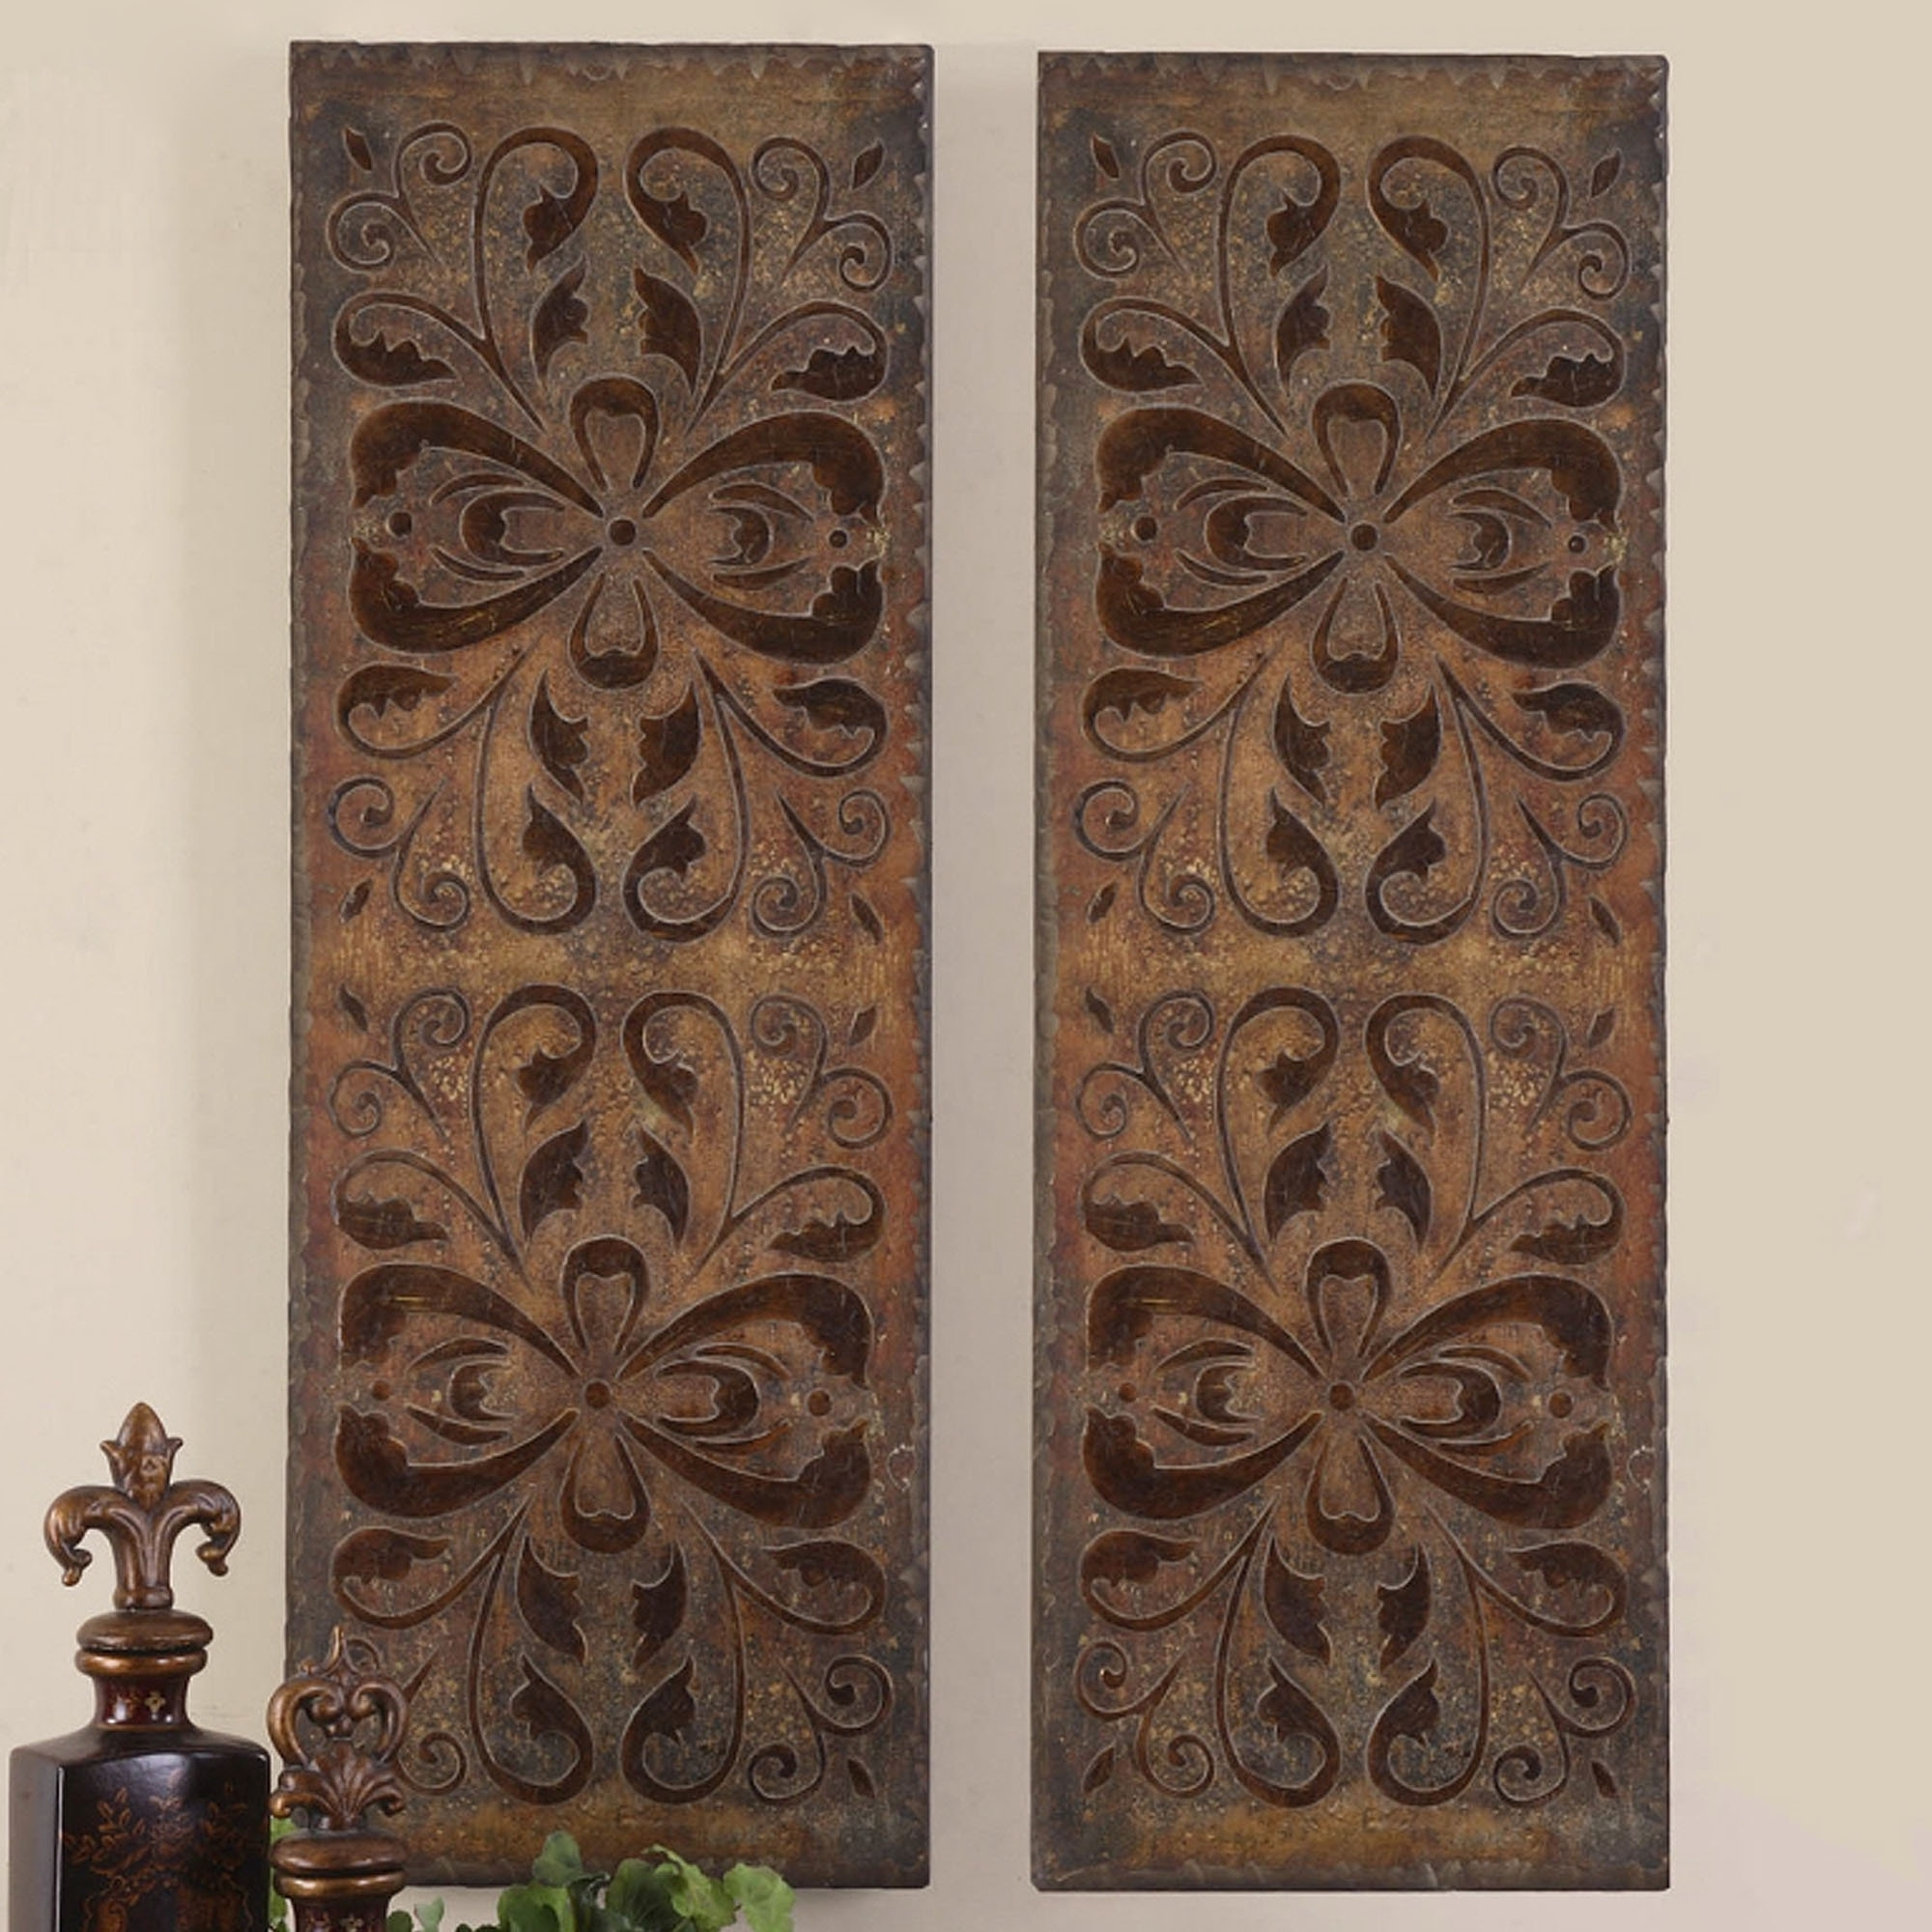 Famous Wood Carved Wall Art Panels Regarding Home Design : Lovely Wood Panel Wall Decor 5 Carved Panels Art (View 13 of 15)